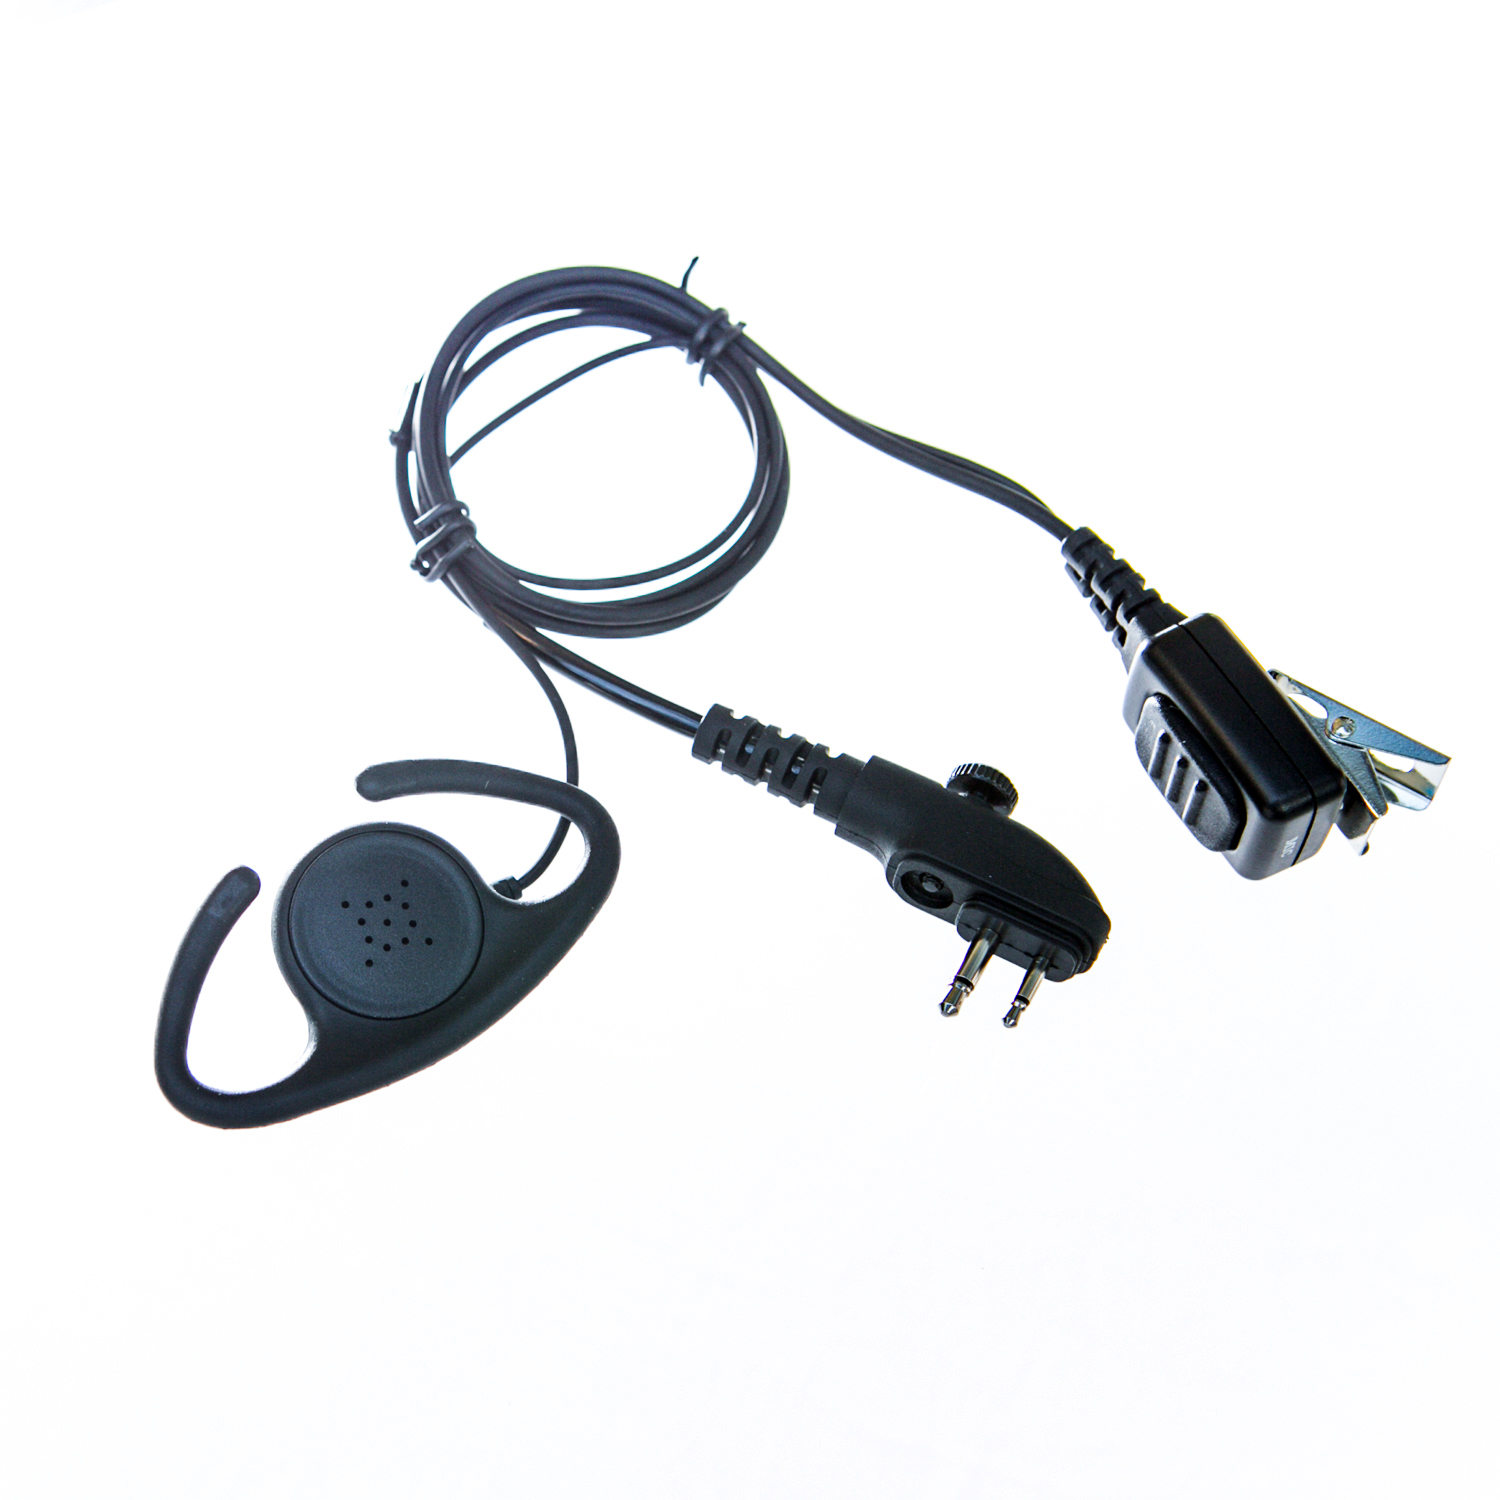 Adjustable D shape earpiece with mic for Hytera radio (2 pin & single screw)